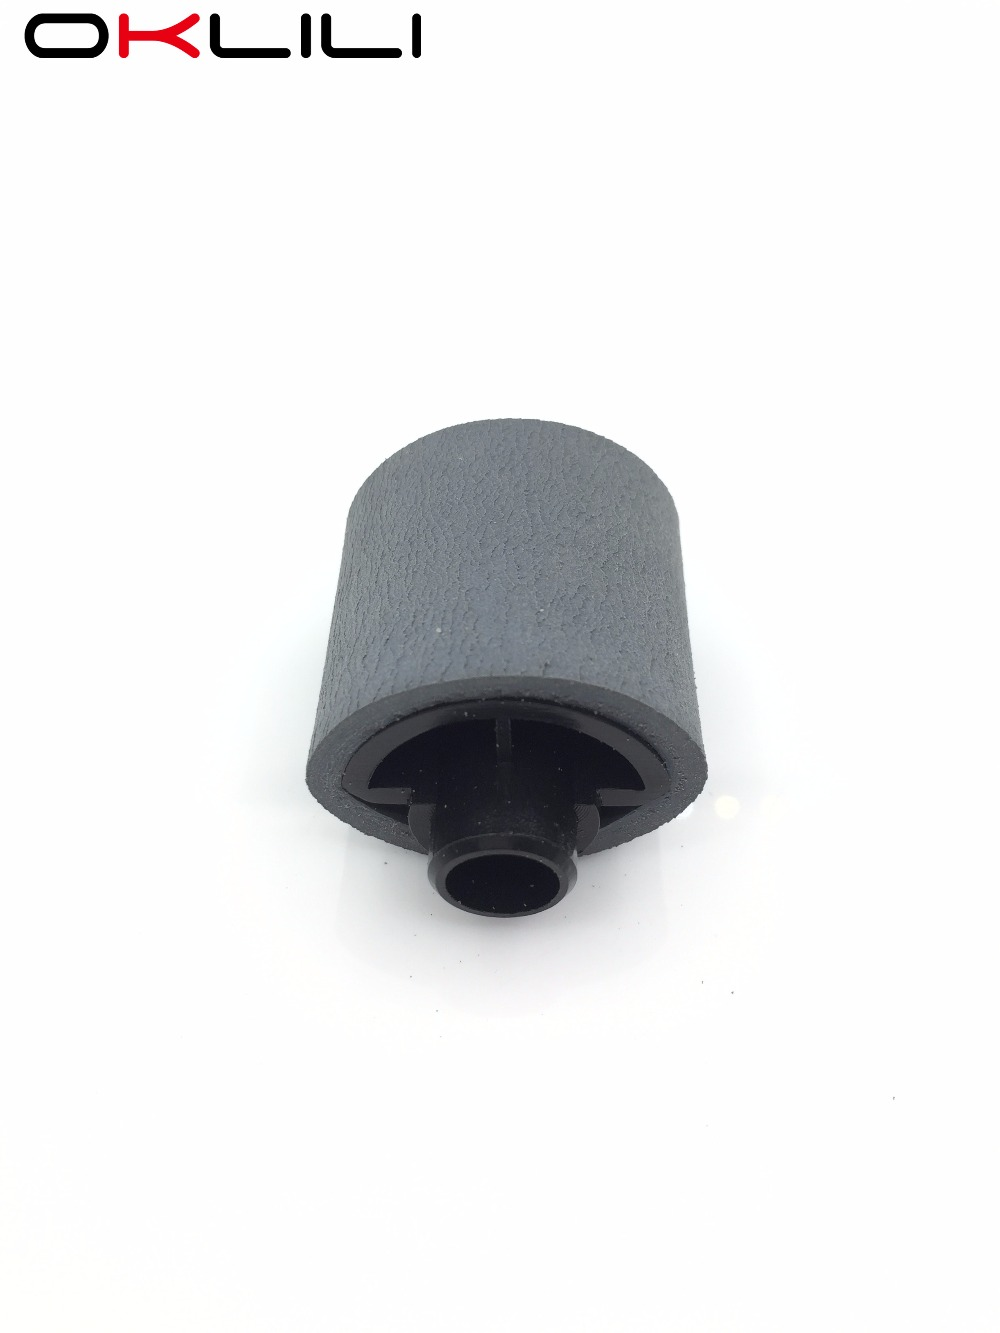 10PCX JC72-01231A Pickup Roller for Samsung ML1510 1710 1740 1750 2250 SCX4016 4116 4100 4200 4220 4300 4500 4520 4720 SF560 565 10pcx jc72 01231a pickup roller for samsung ml1510 1710 1740 1750 2250 scx4016 4116 4100 4200 4220 4300 4500 4520 4720 sf560 565